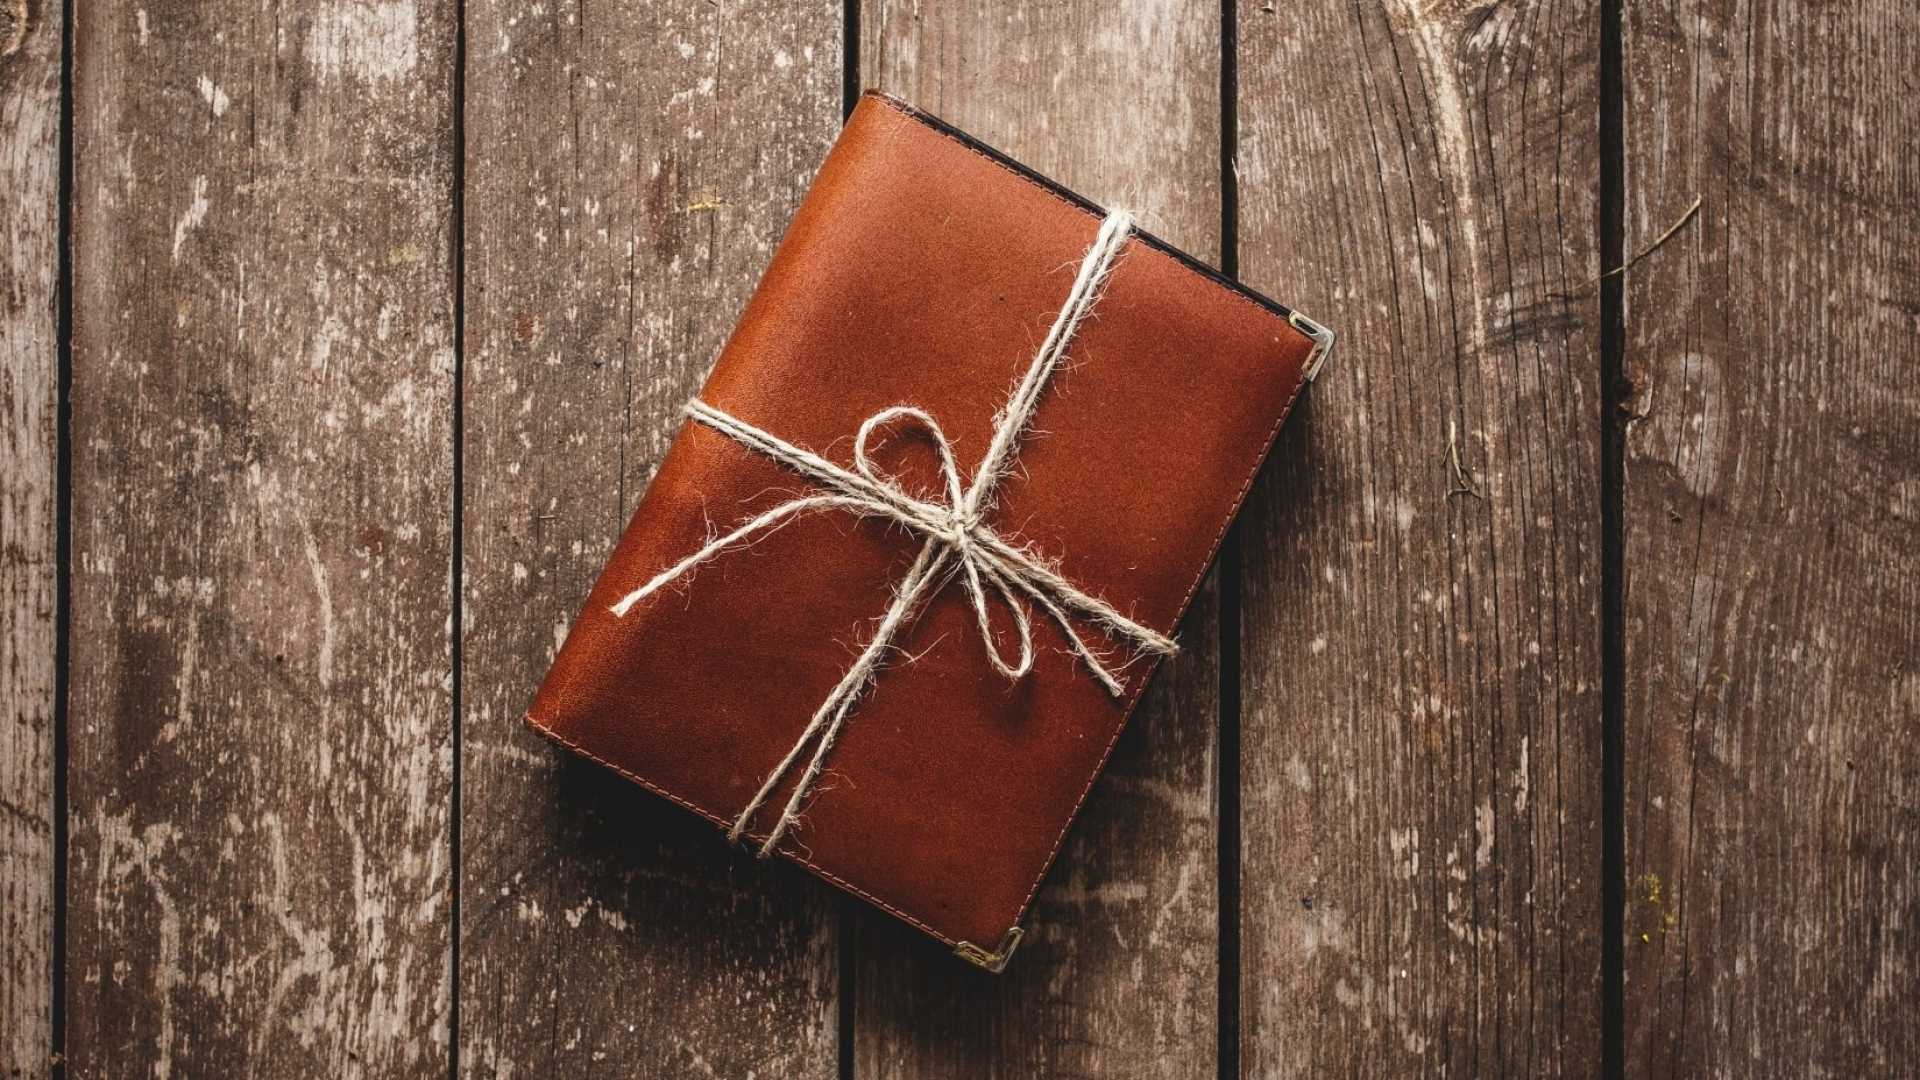 <b>17 of the Best Business Books to Give as Gifts This Holiday Season</b>